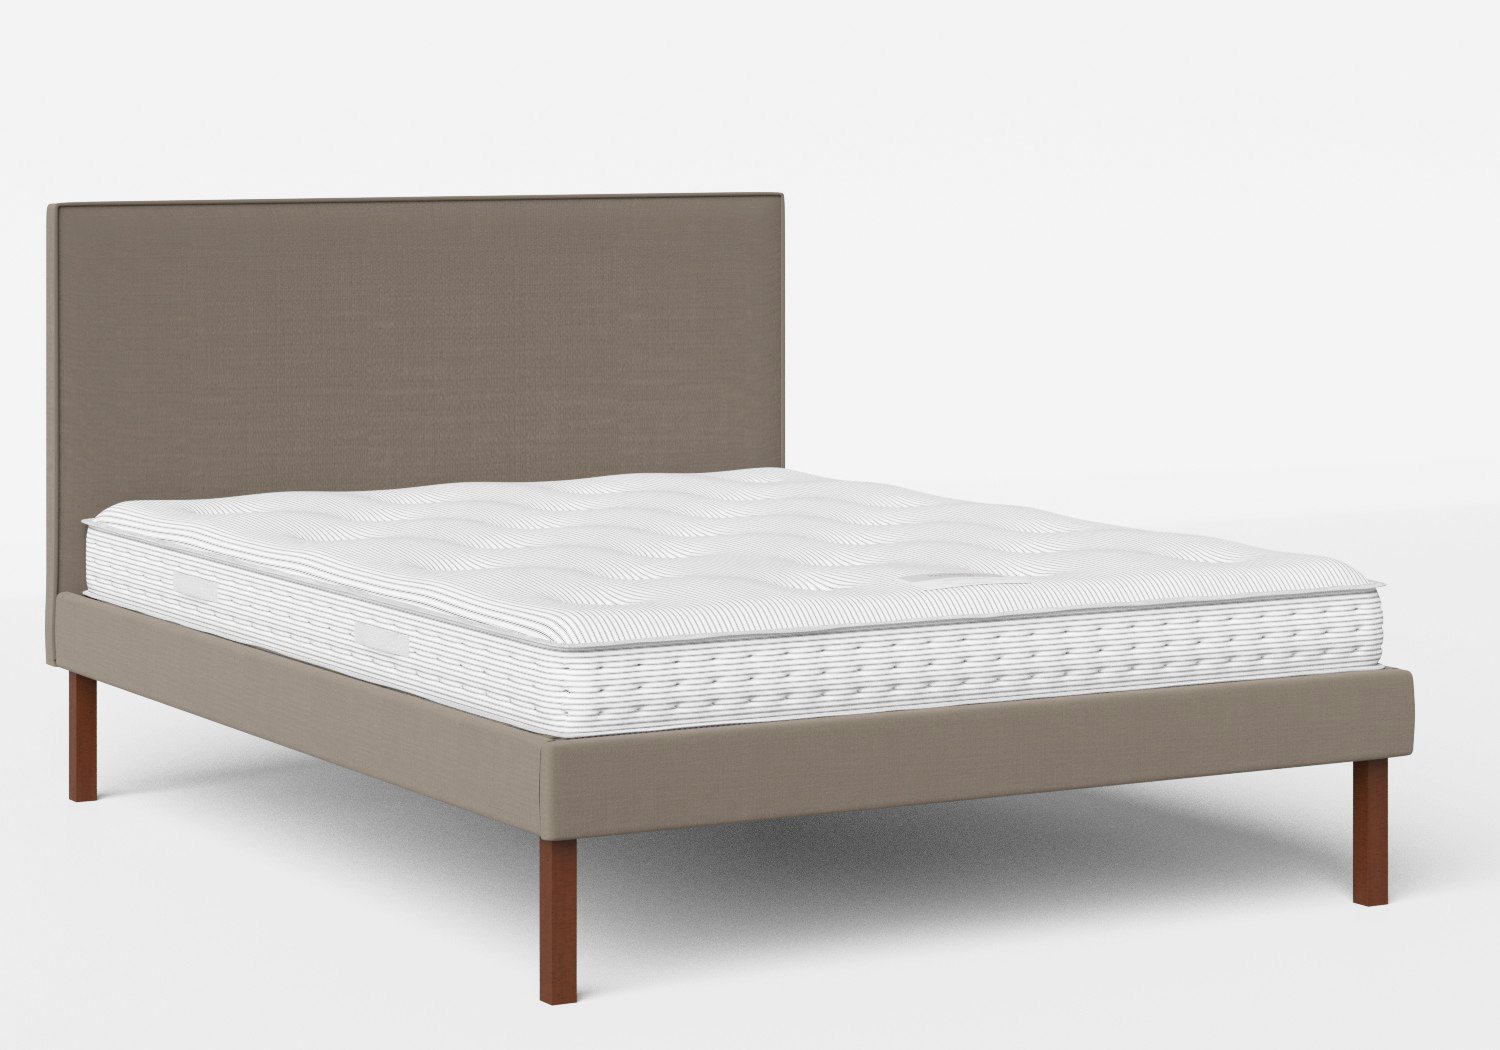 Misaki Upholstered Bed in Grey fabric with piping shown with Juno 1 mattress